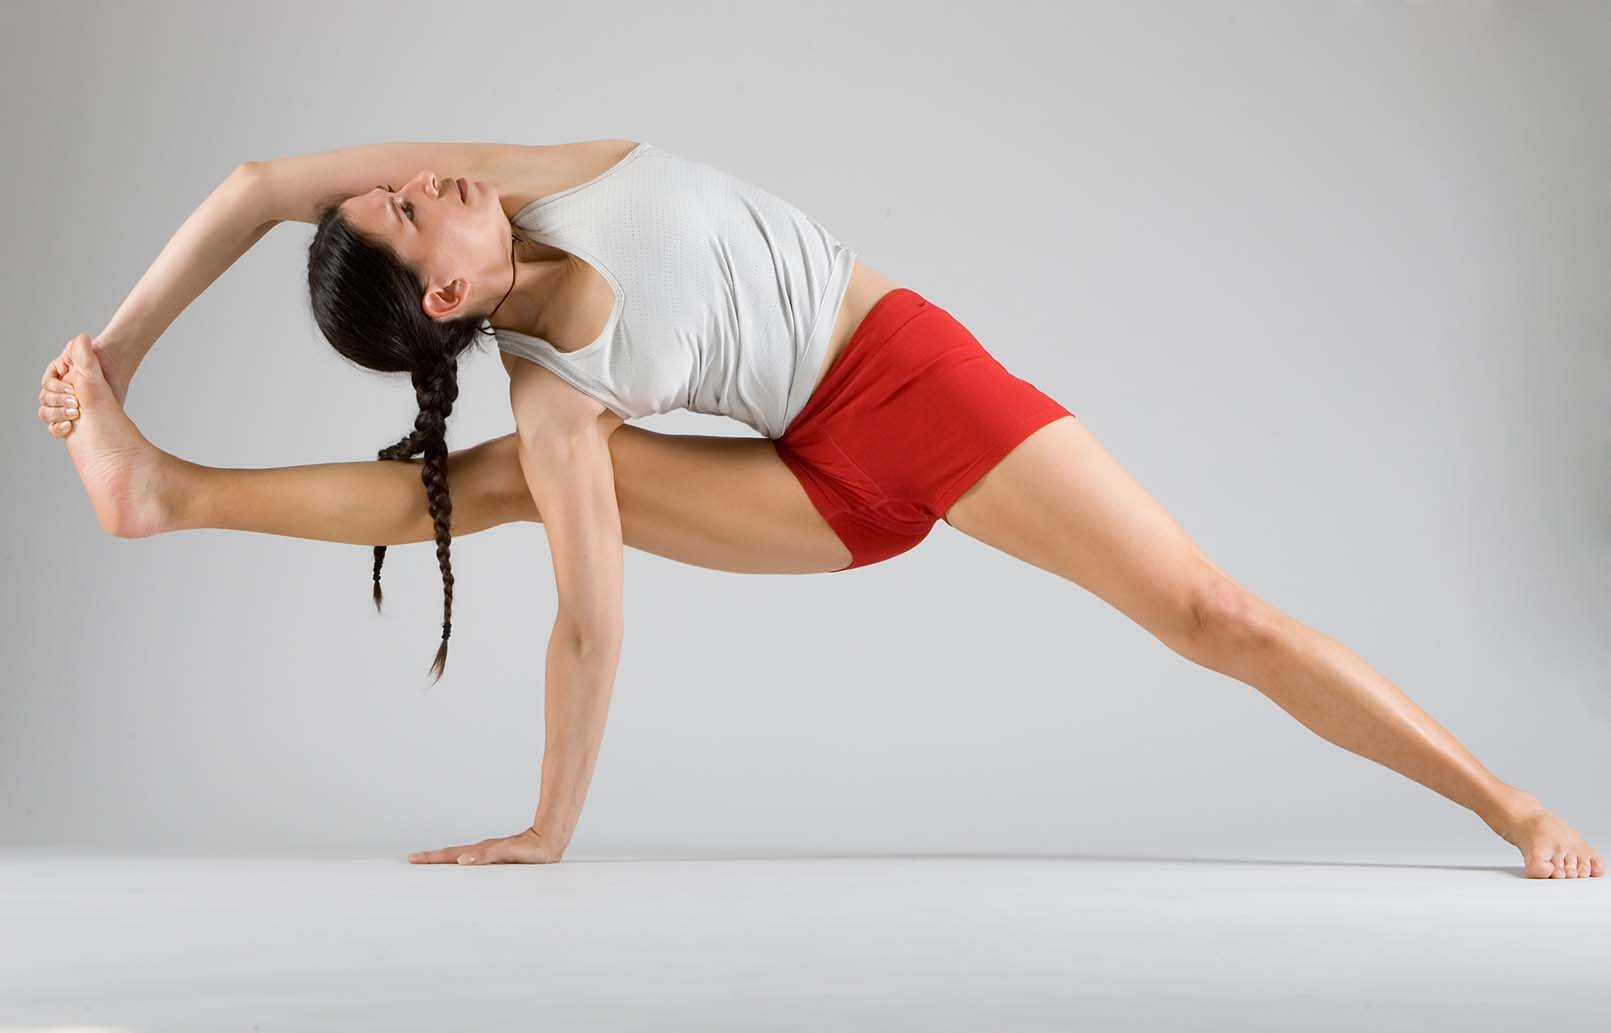 What are the best stretches and exercises to improve posture? 5